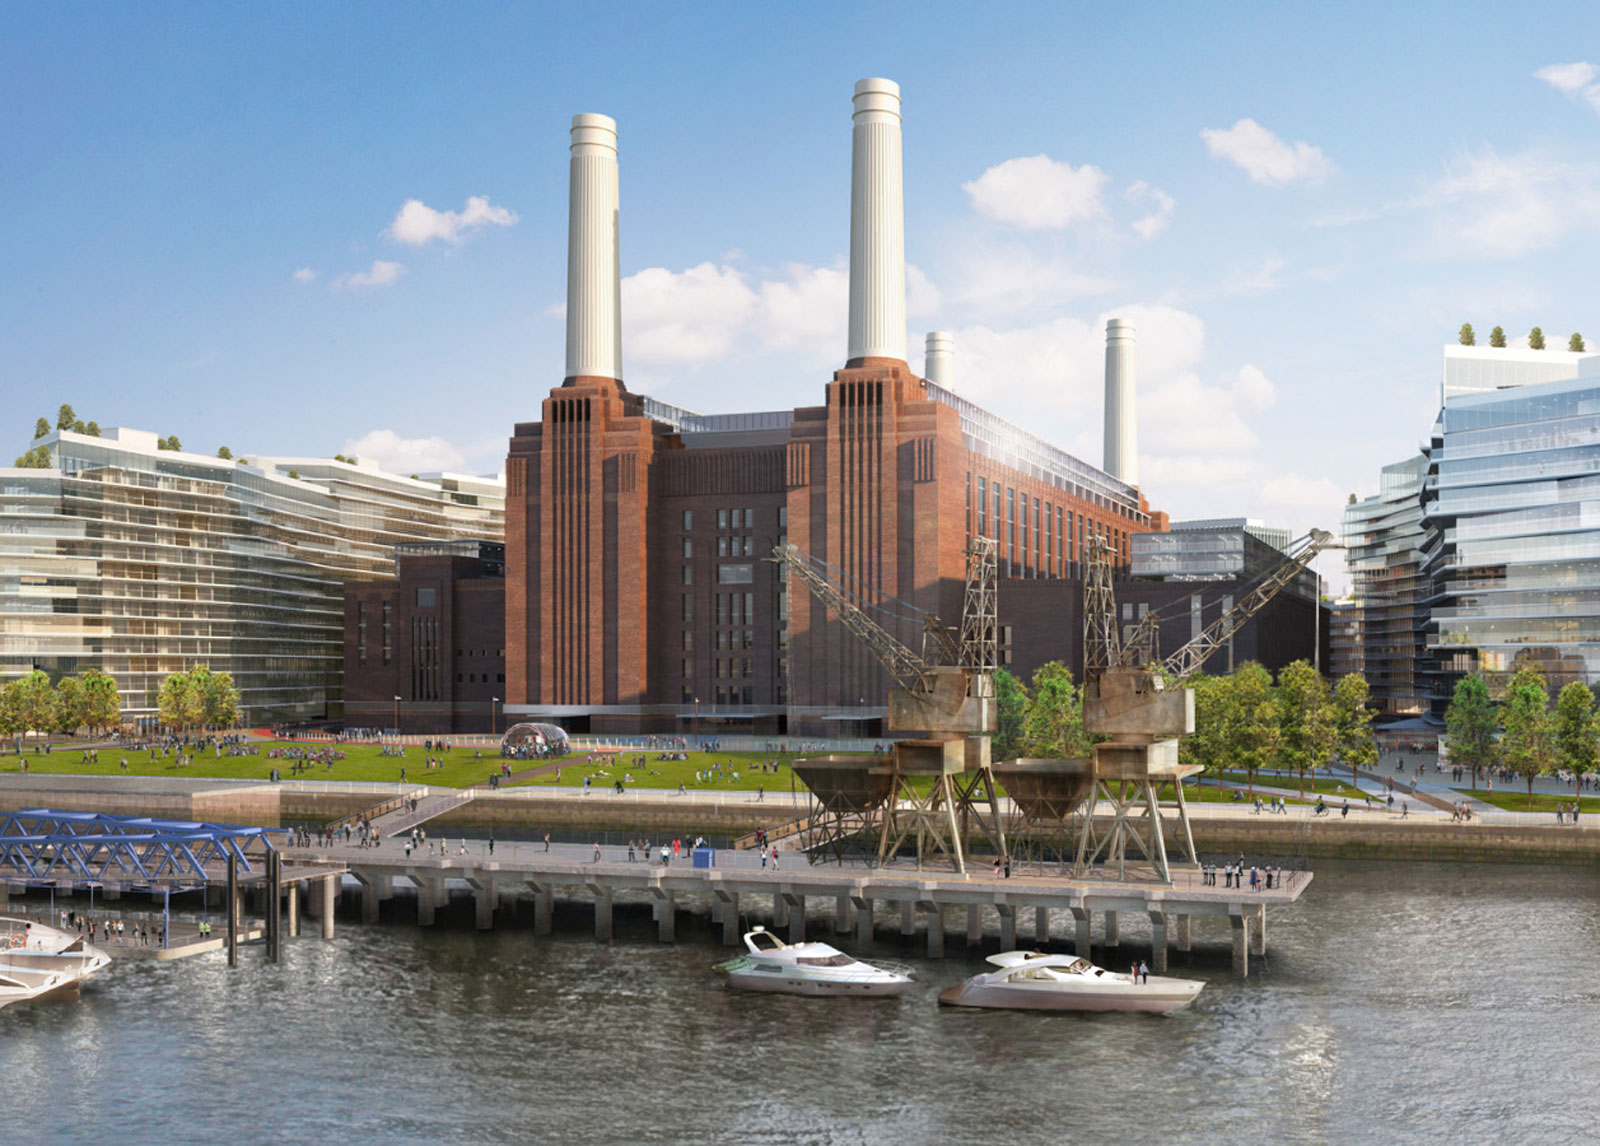 Battersea power